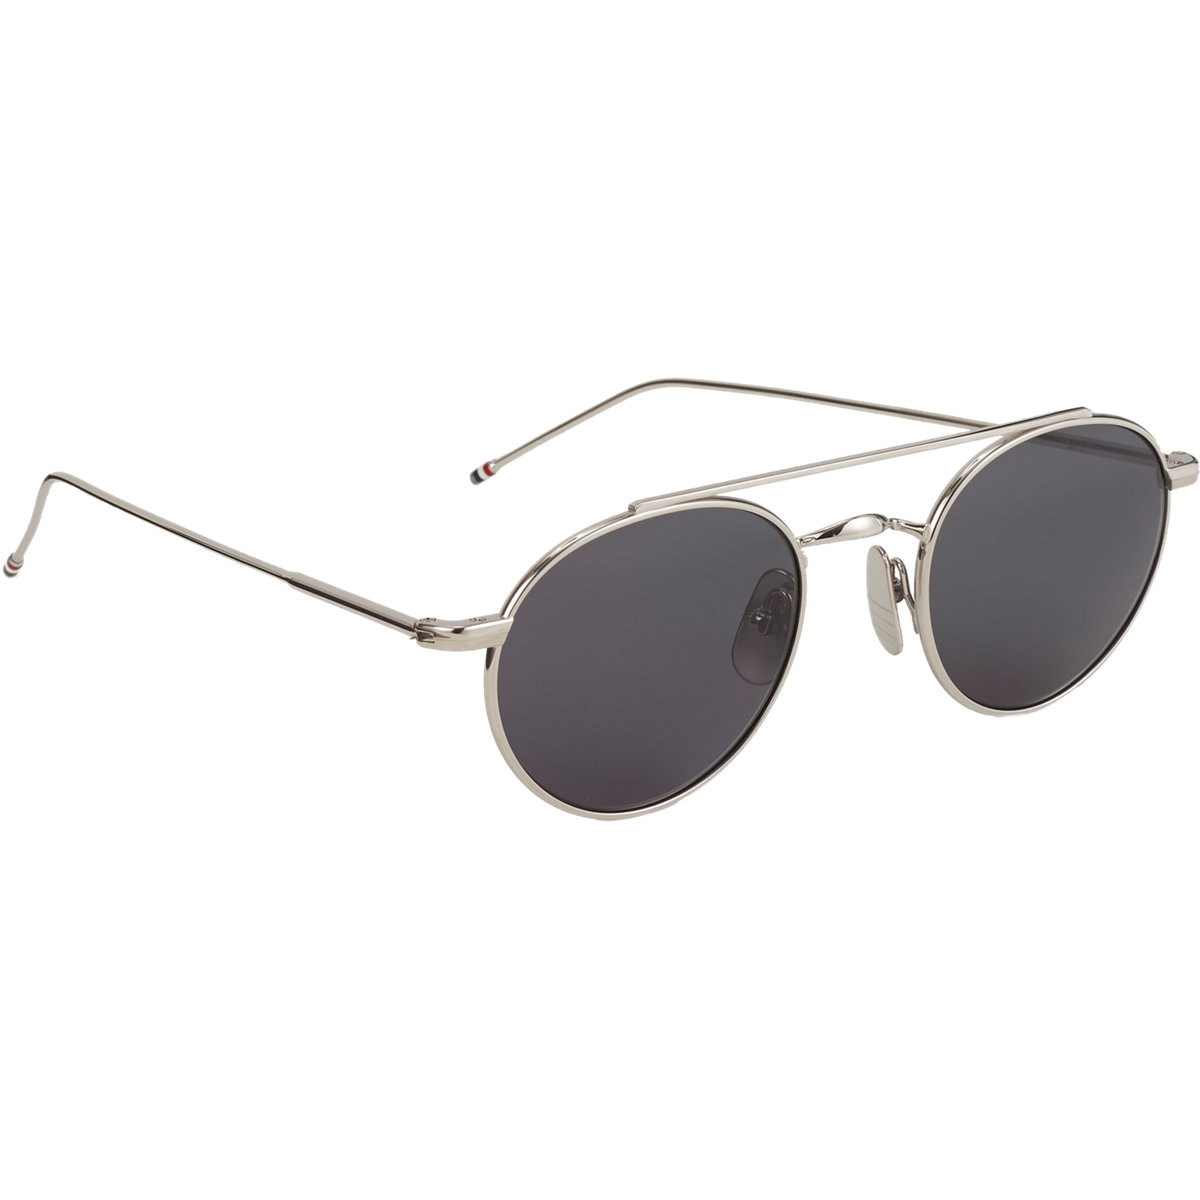 476f99f80a86 ... Thom Browne Round Frame Sunglasses in Metallic for Men Lyst